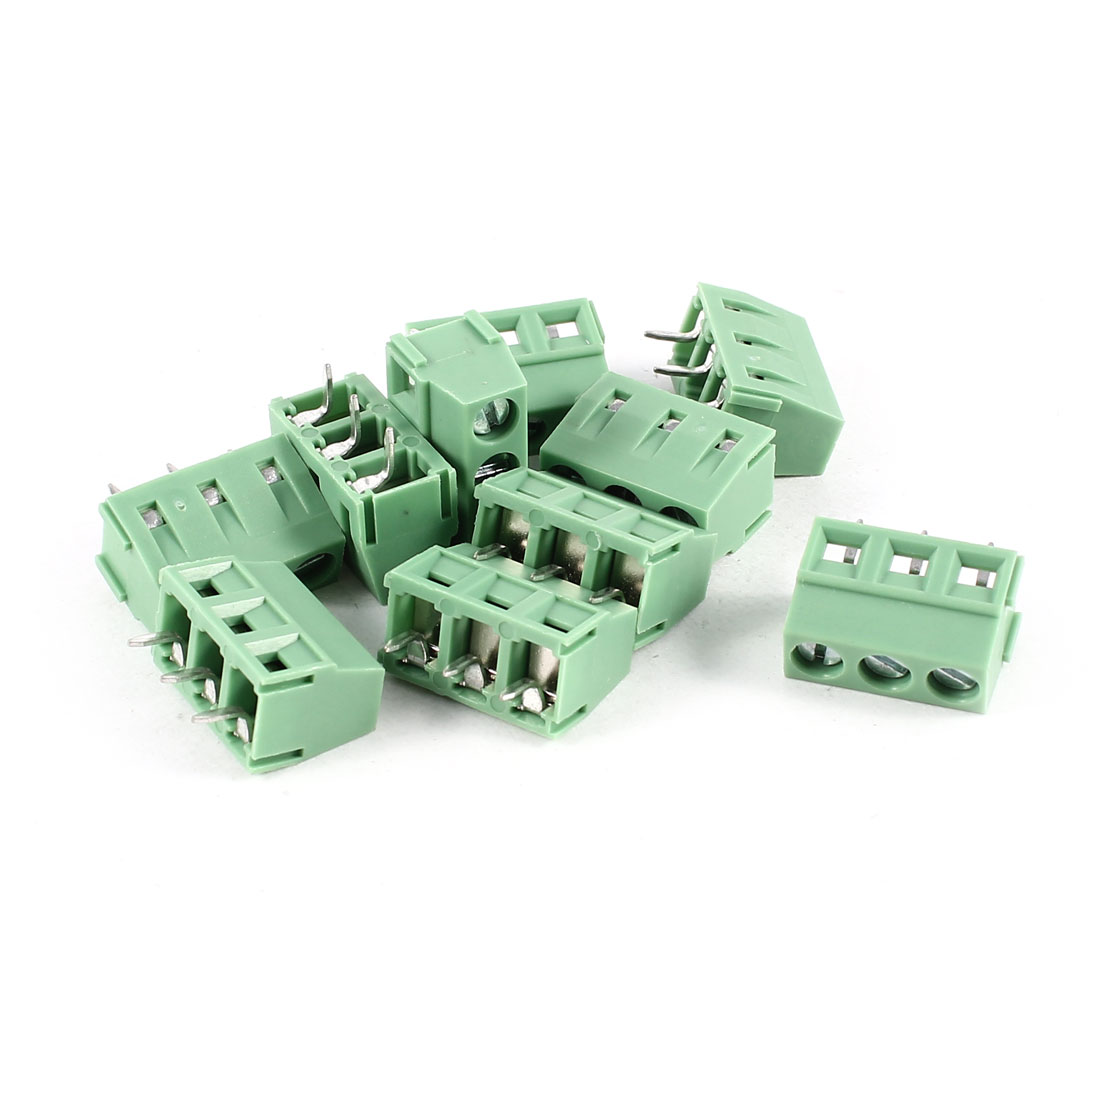 10 Pcs Green KF127-3P 3 Position 5mm Pitch PCB Mount Screw Terminal Block Connectors 300V 10A KF128R